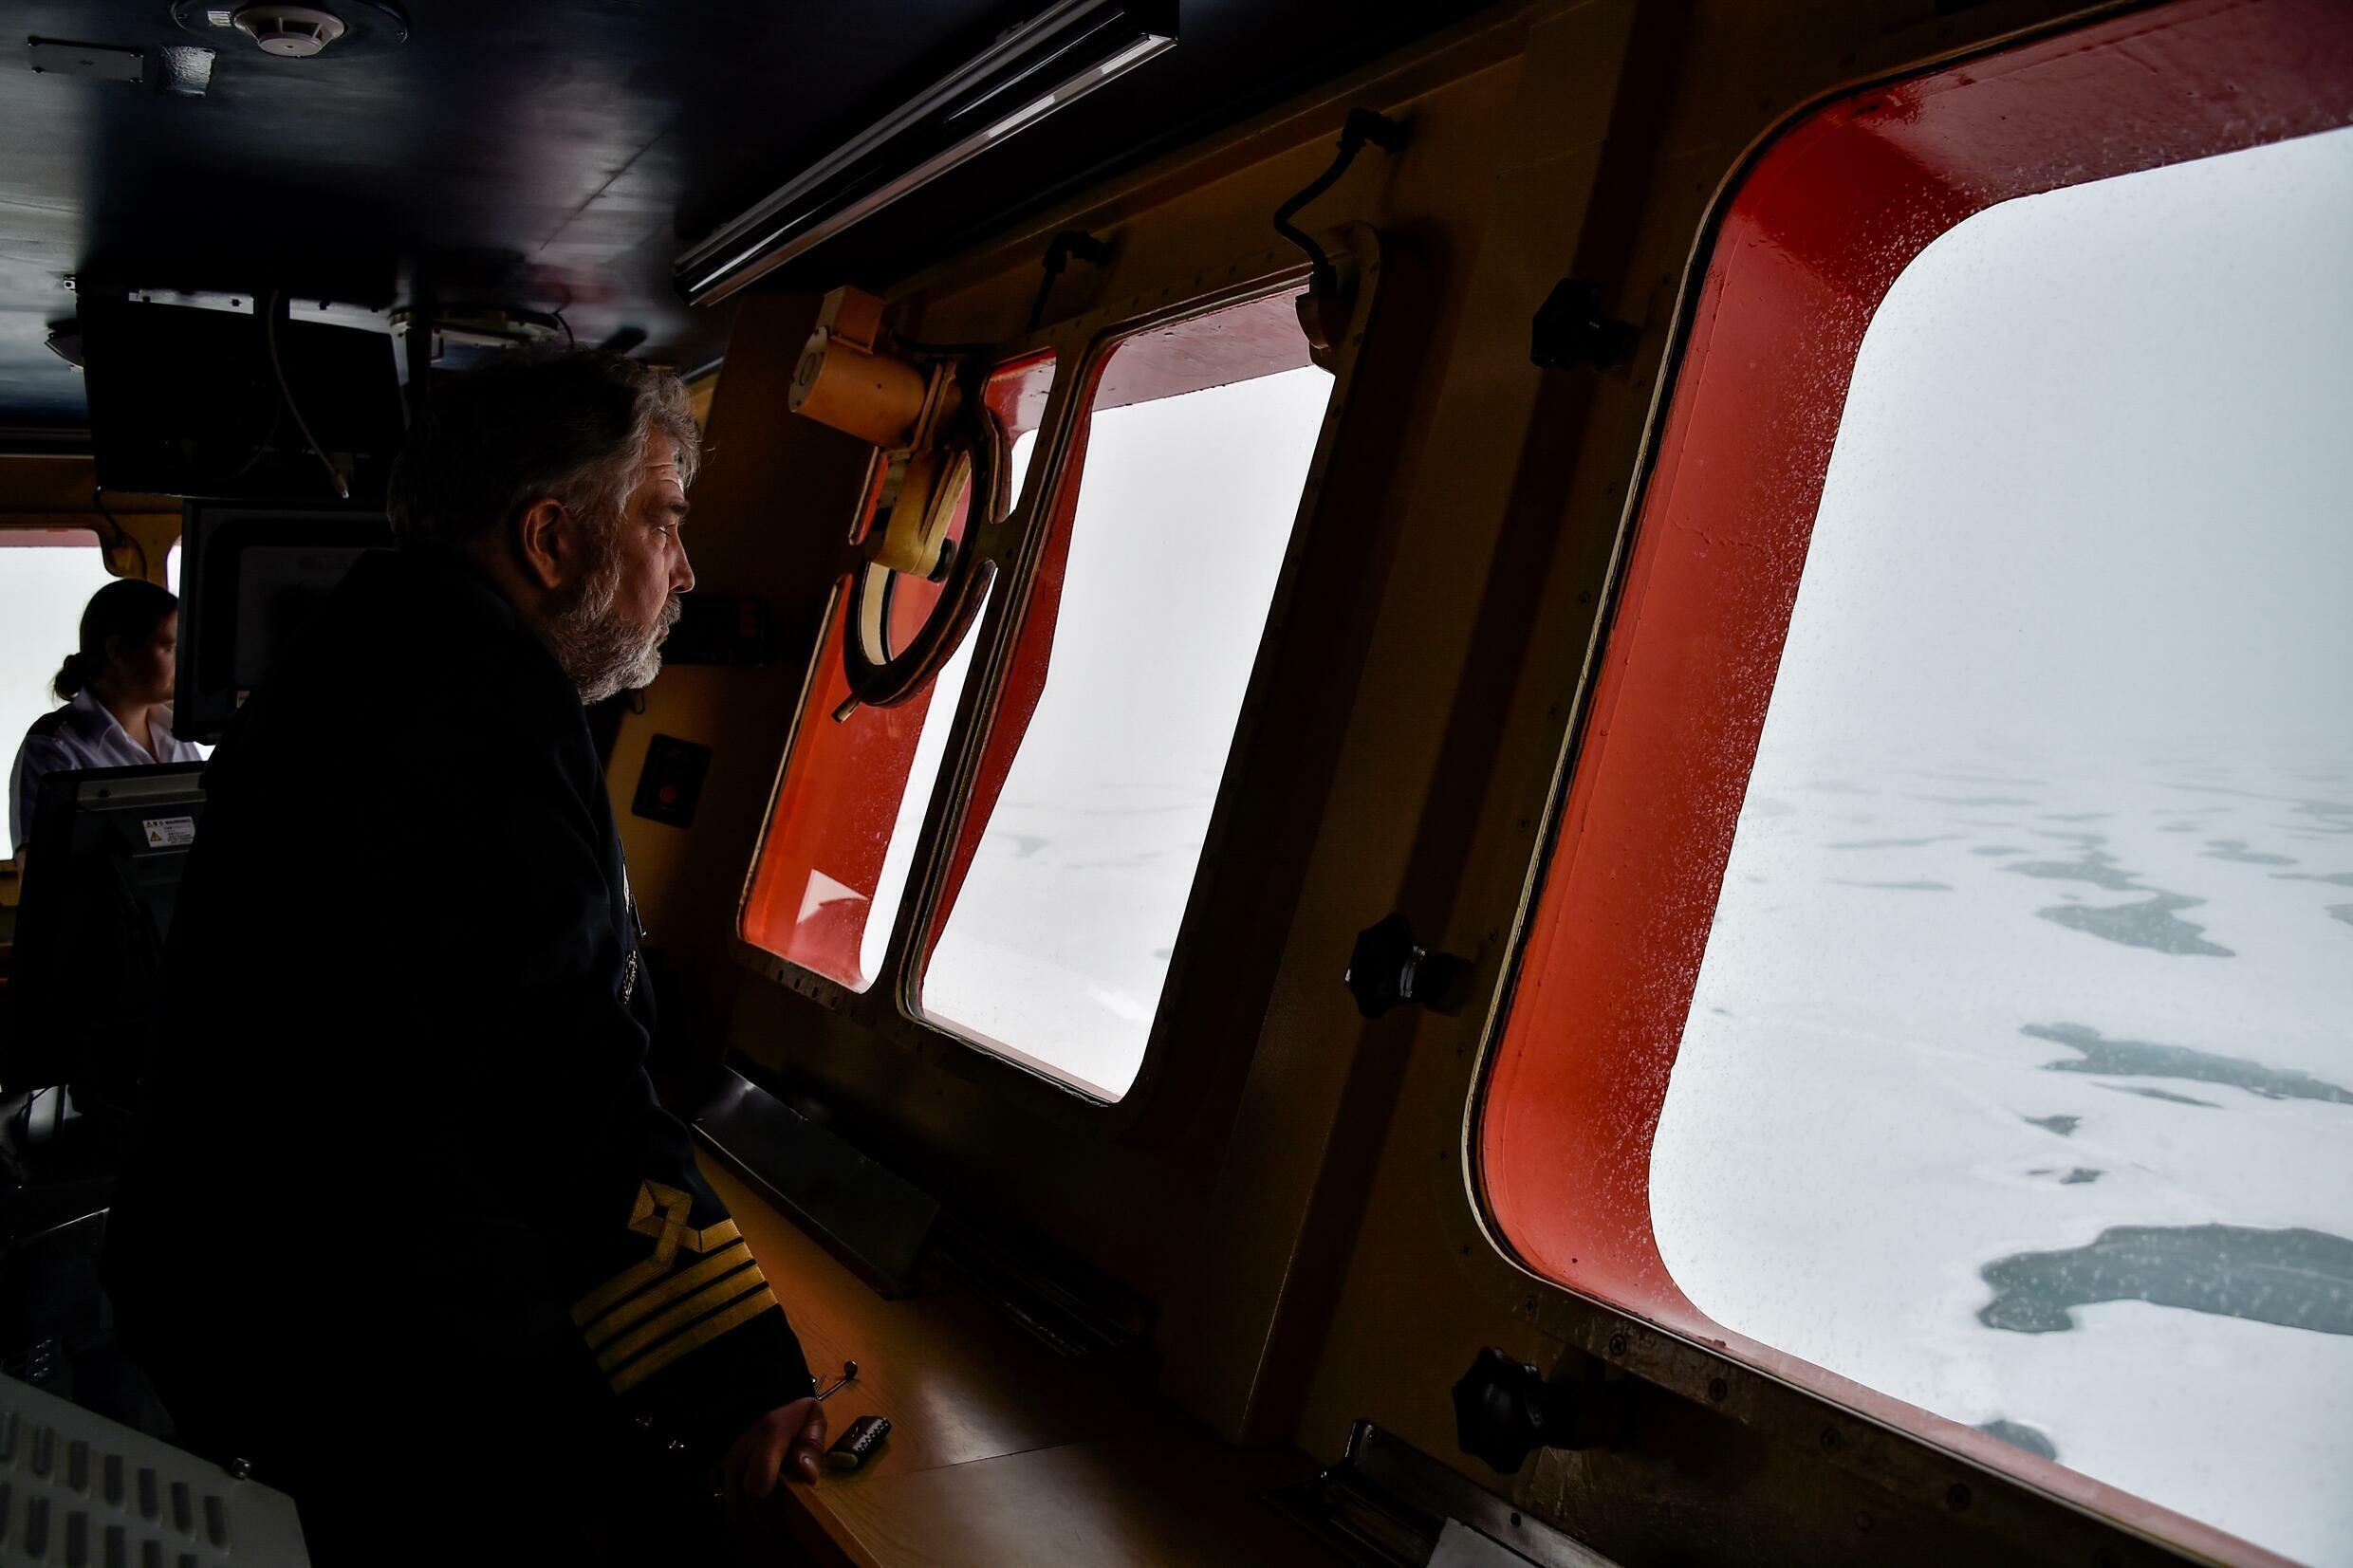 After nearly 30 years at sea, much of it in the Arctic, Dmitry Lobusov has seen first hand the changes wrought by global warming